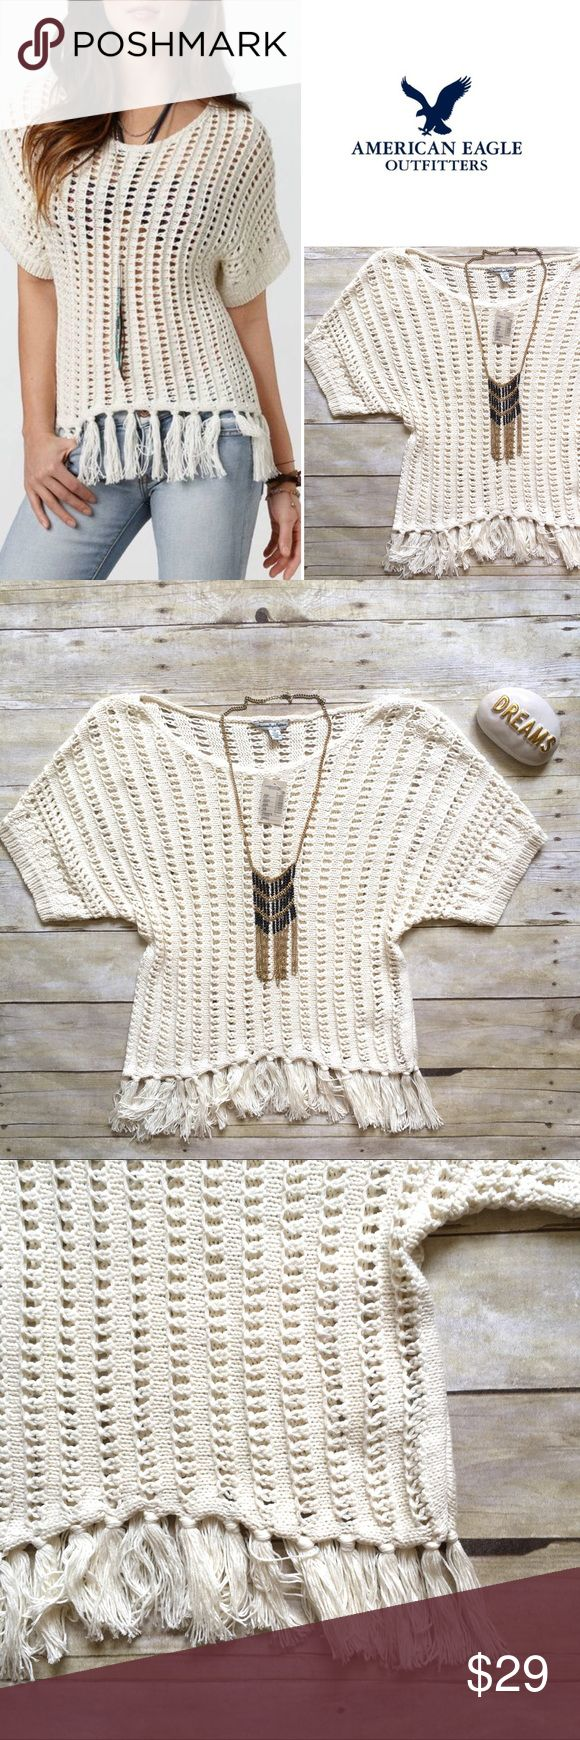 """American Eagle open knit fringe trim sweater Great over a cami. 55% Cotton, 45% Acrylic Soft open stitch cotton blend. Easy, oversized fit. Scoop neck and scoop back. Short dolman sleeves. Ribbed cuffs. New with tags! 24""""L. Size Small. {Location B8} American Eagle Outfitters Sweaters"""